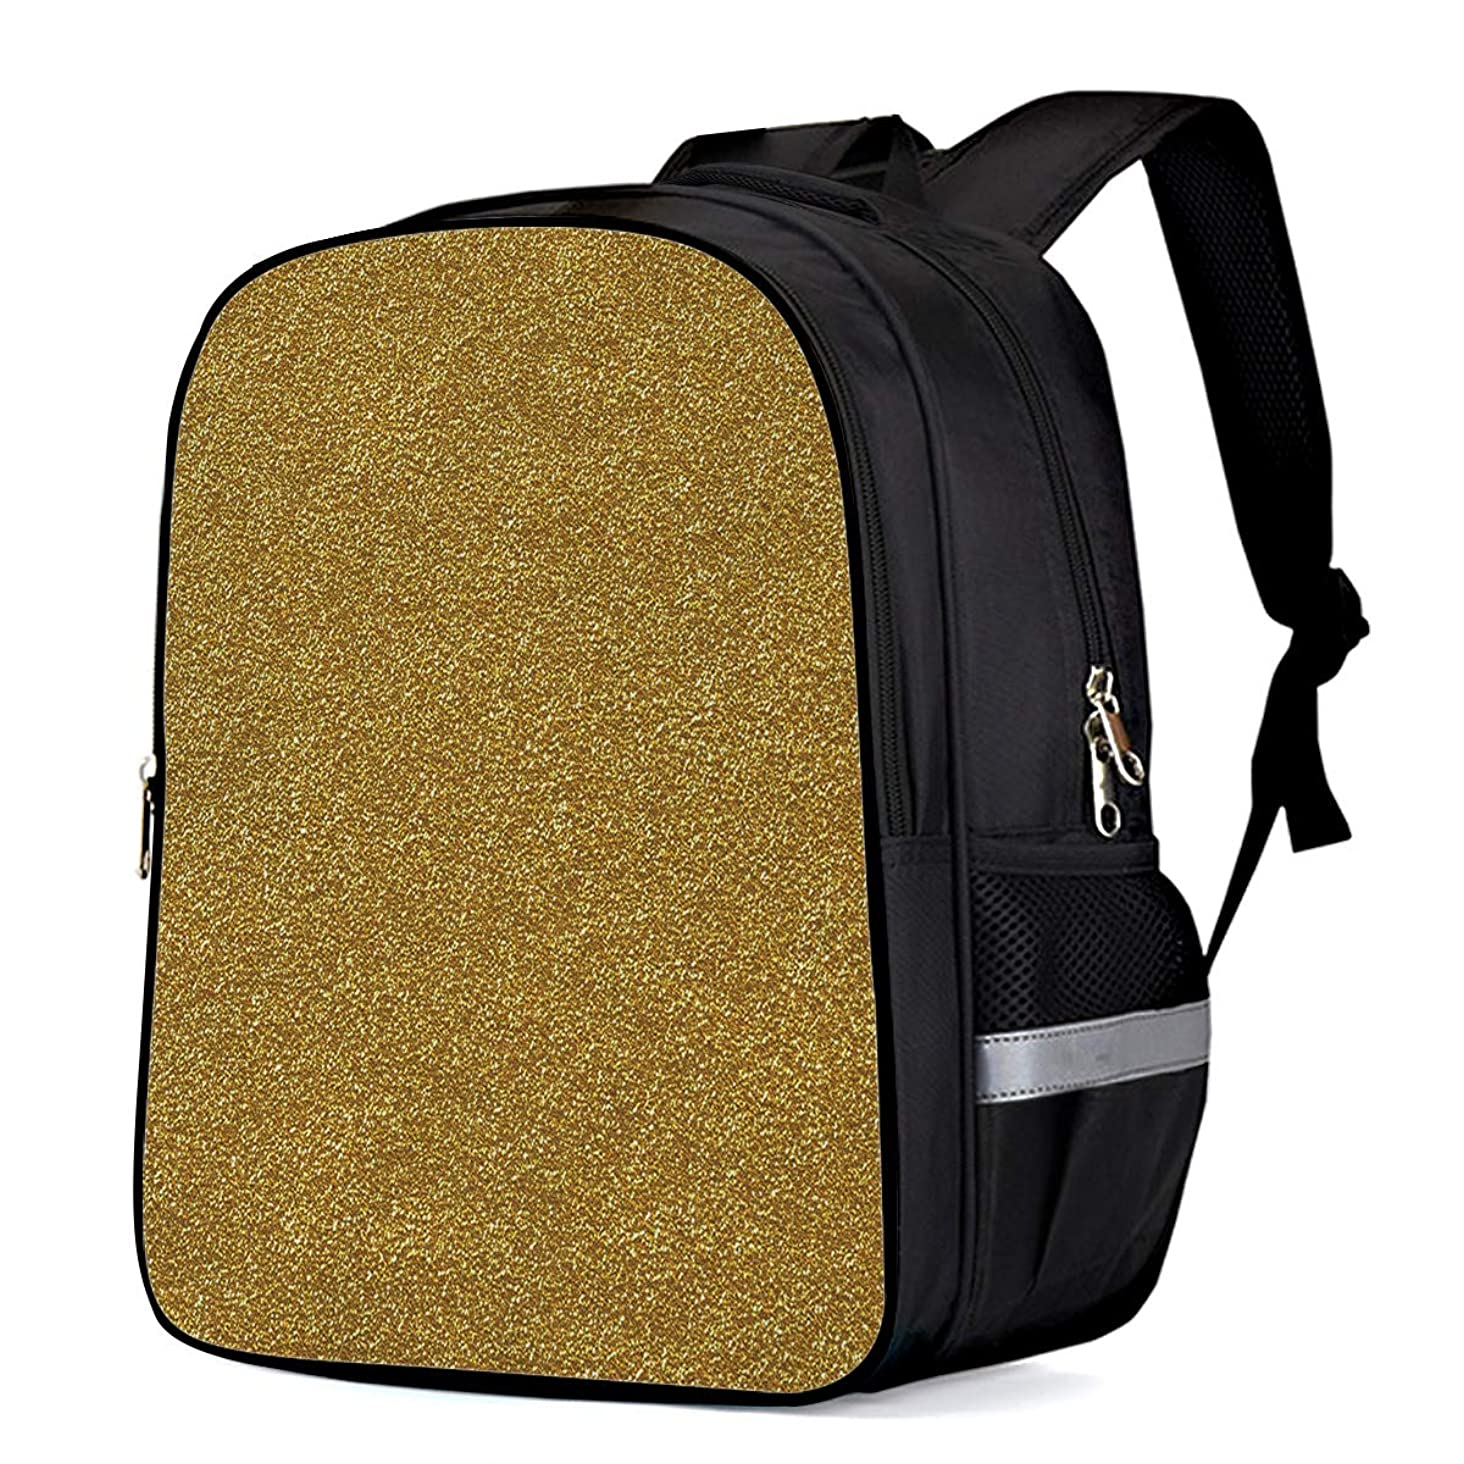 Kids School Backpack Travel Durable Oxford Fabric Daypack, Golden Bump Texture Gold Foil Paper Student Schoolbag with Pockets for Boys/Girls 13 x 11 x 6in